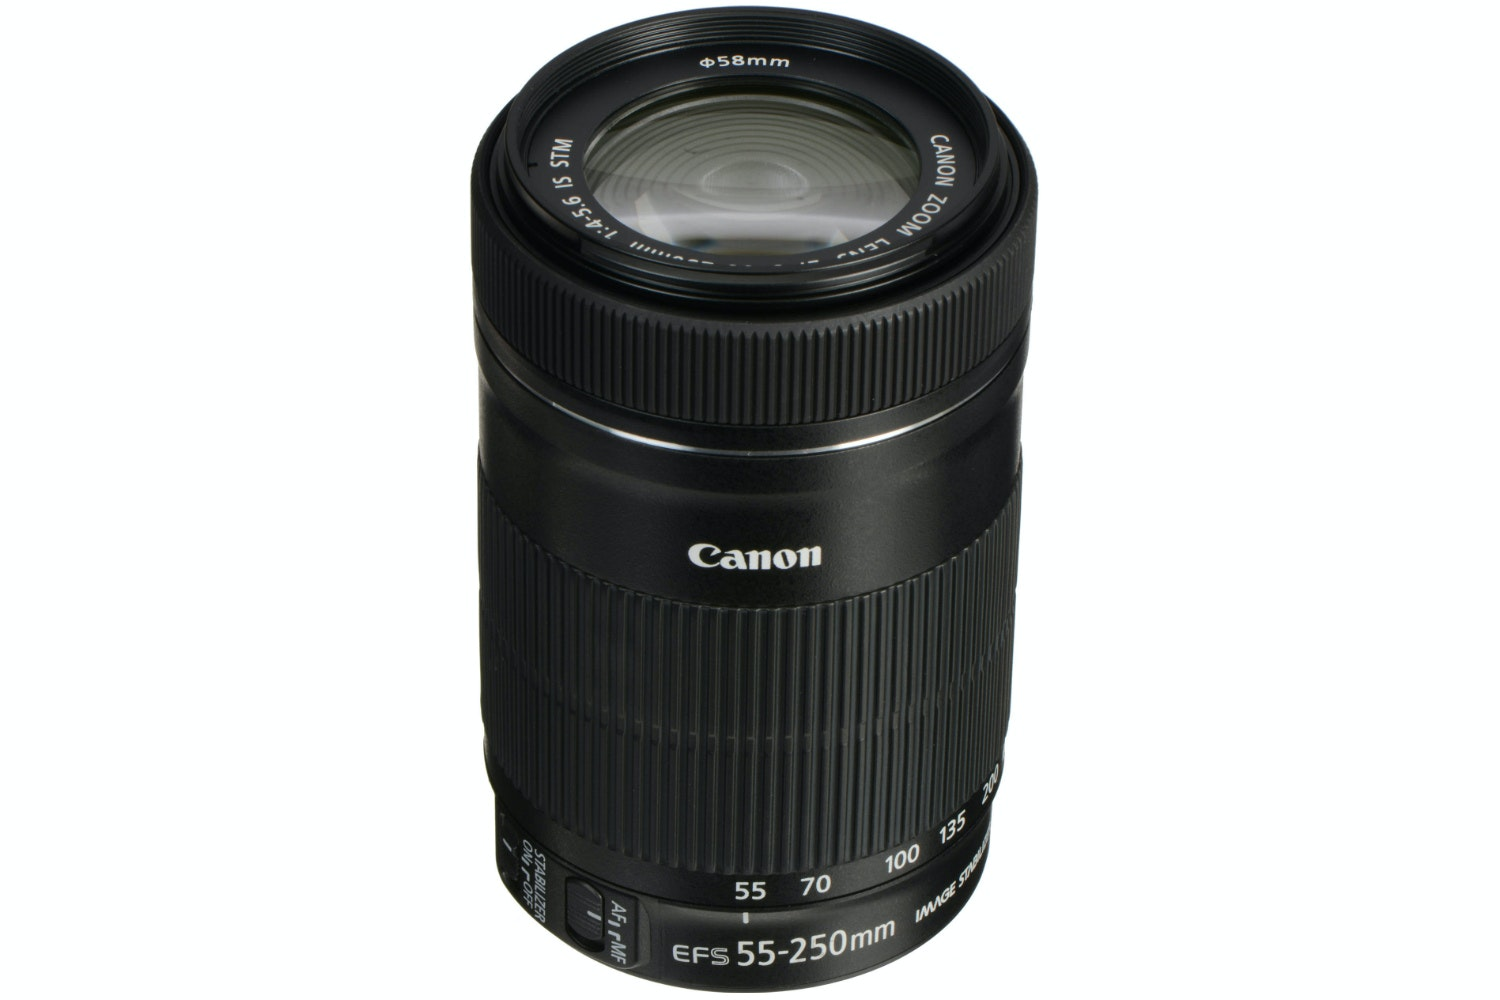 Canon EF-S 55-250 mm f/4-5.6 IS STM Lens